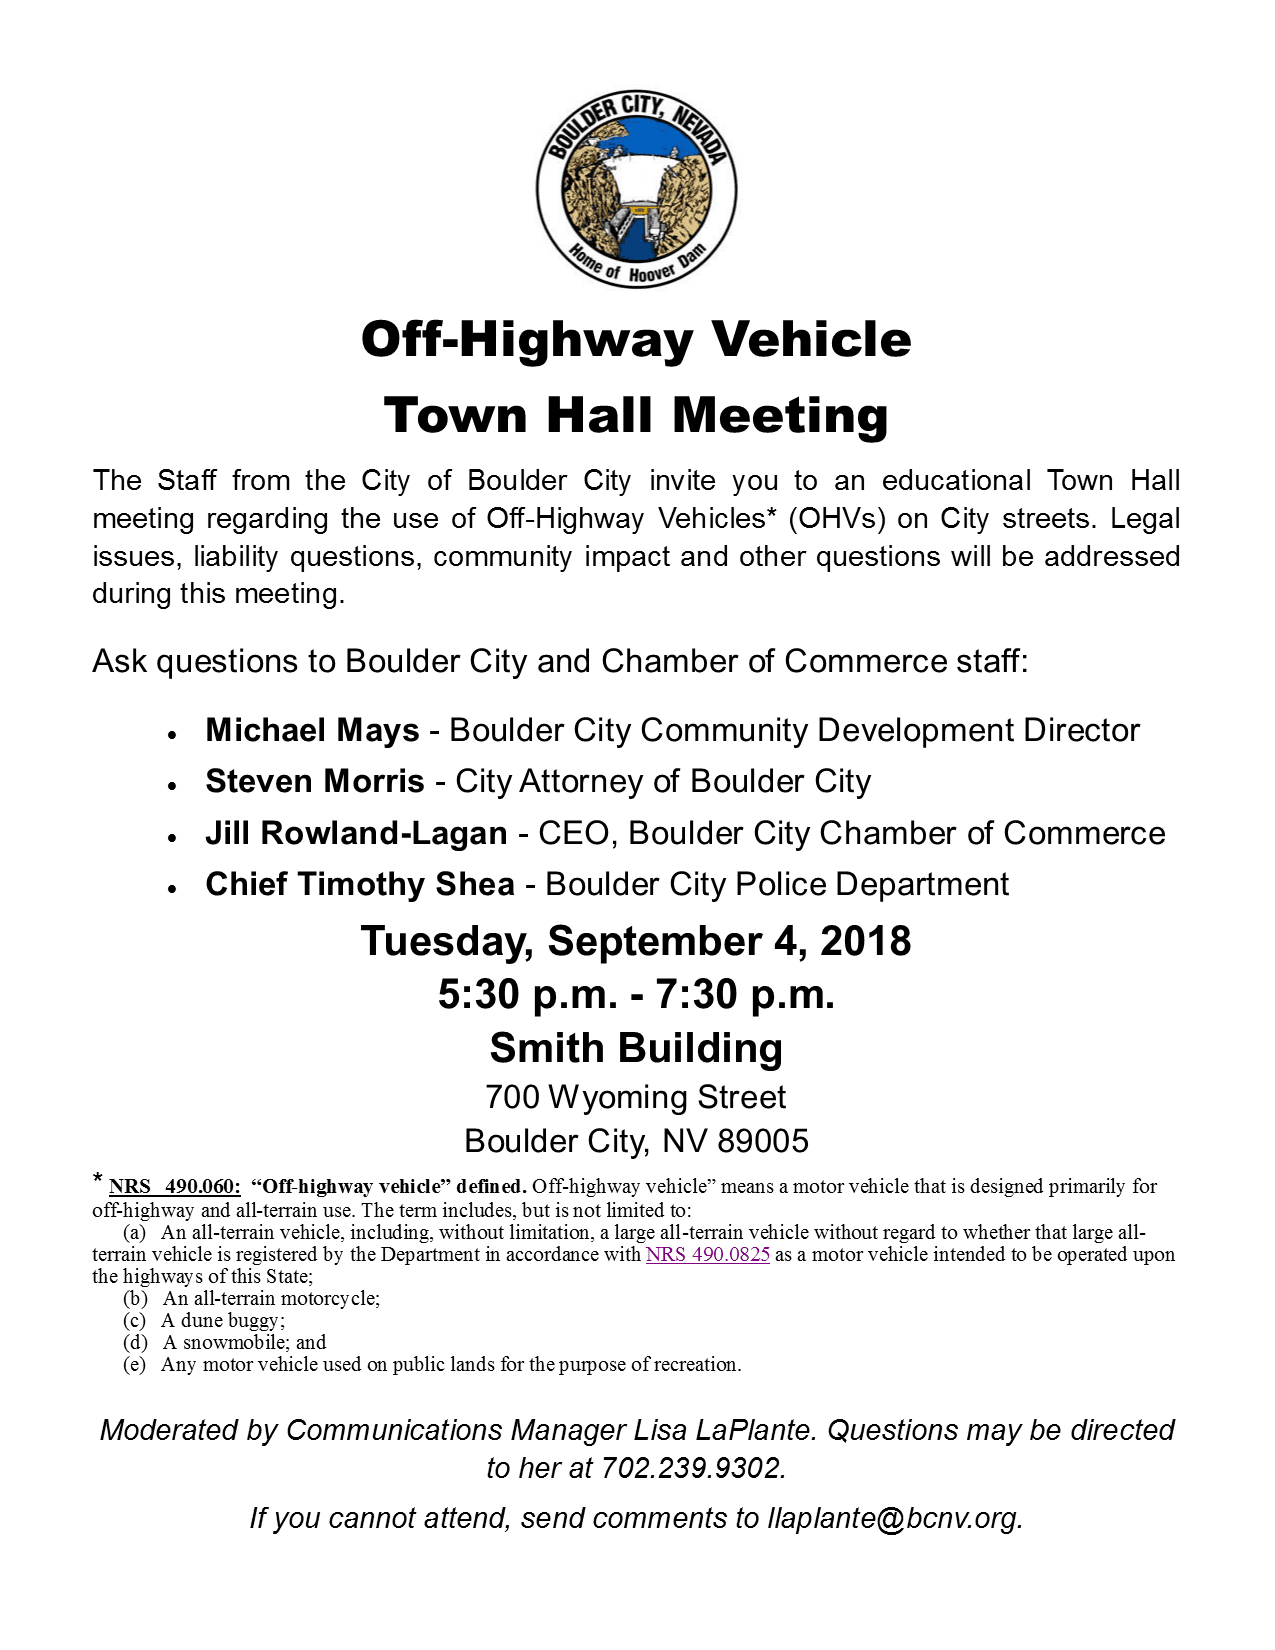 9.4.18 OHV Town Hall